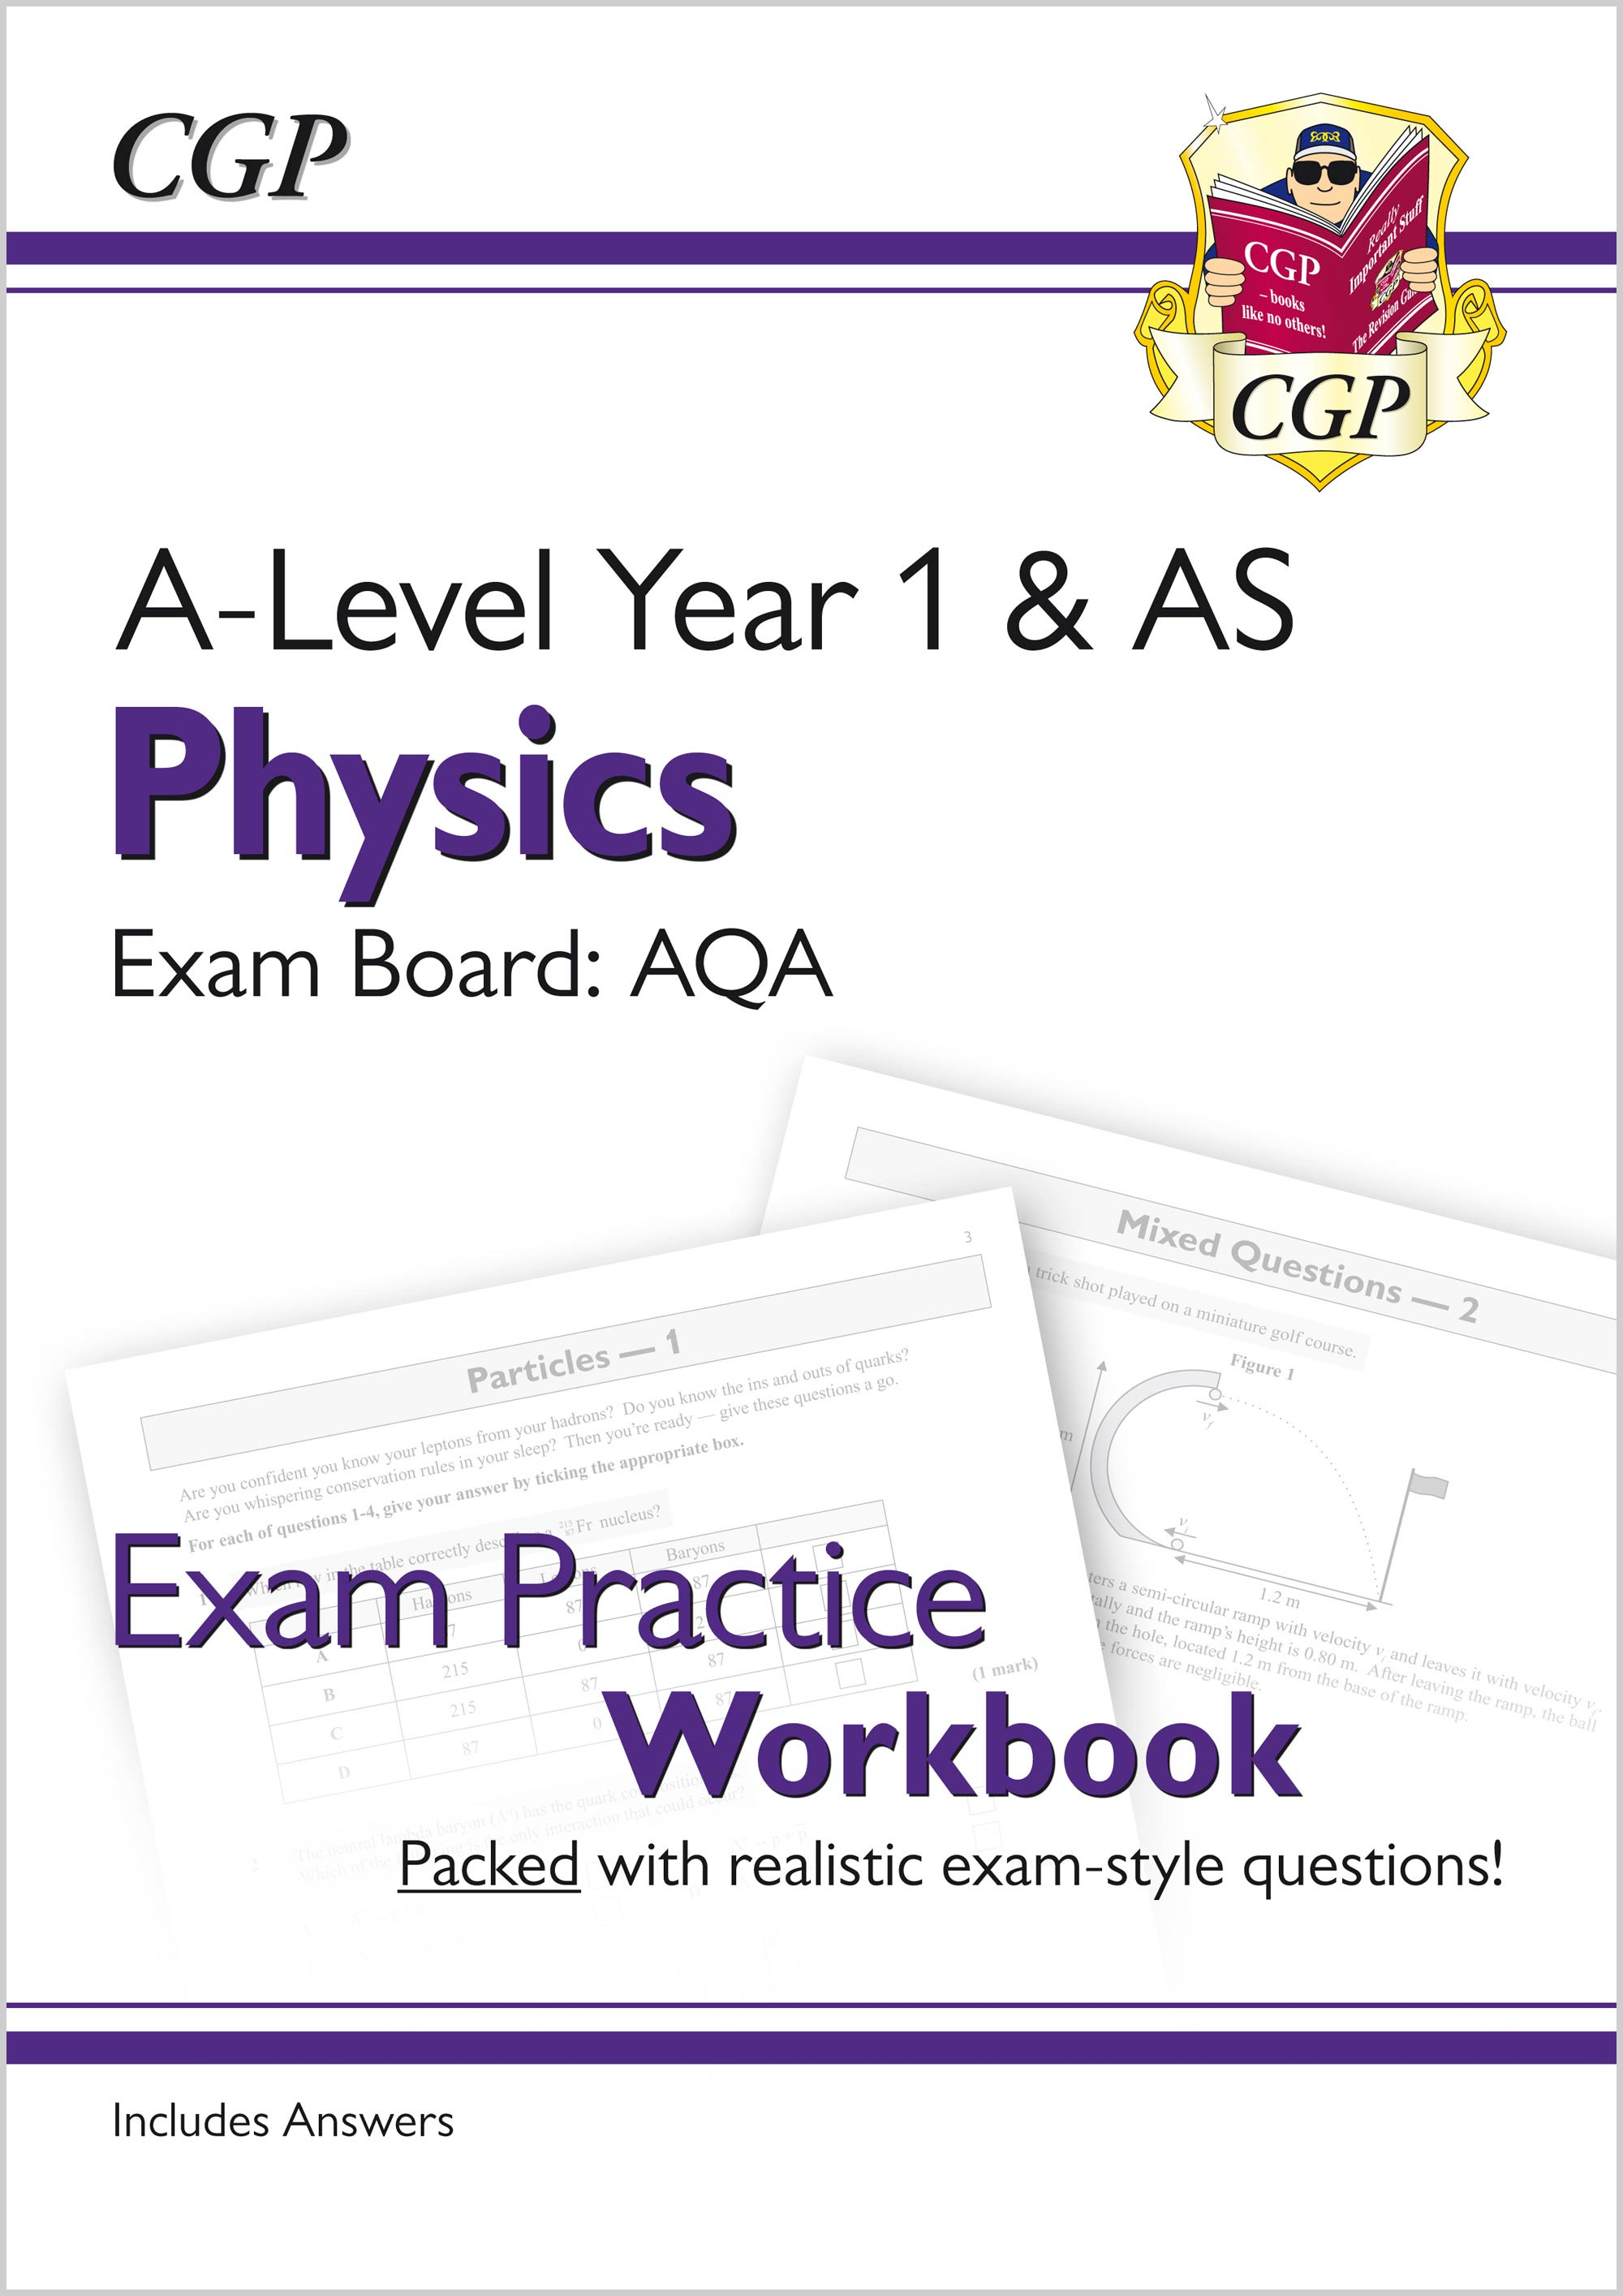 PAQ51 - A-Level Physics: AQA Year 1 & AS Exam Practice Workbook - includes Answers